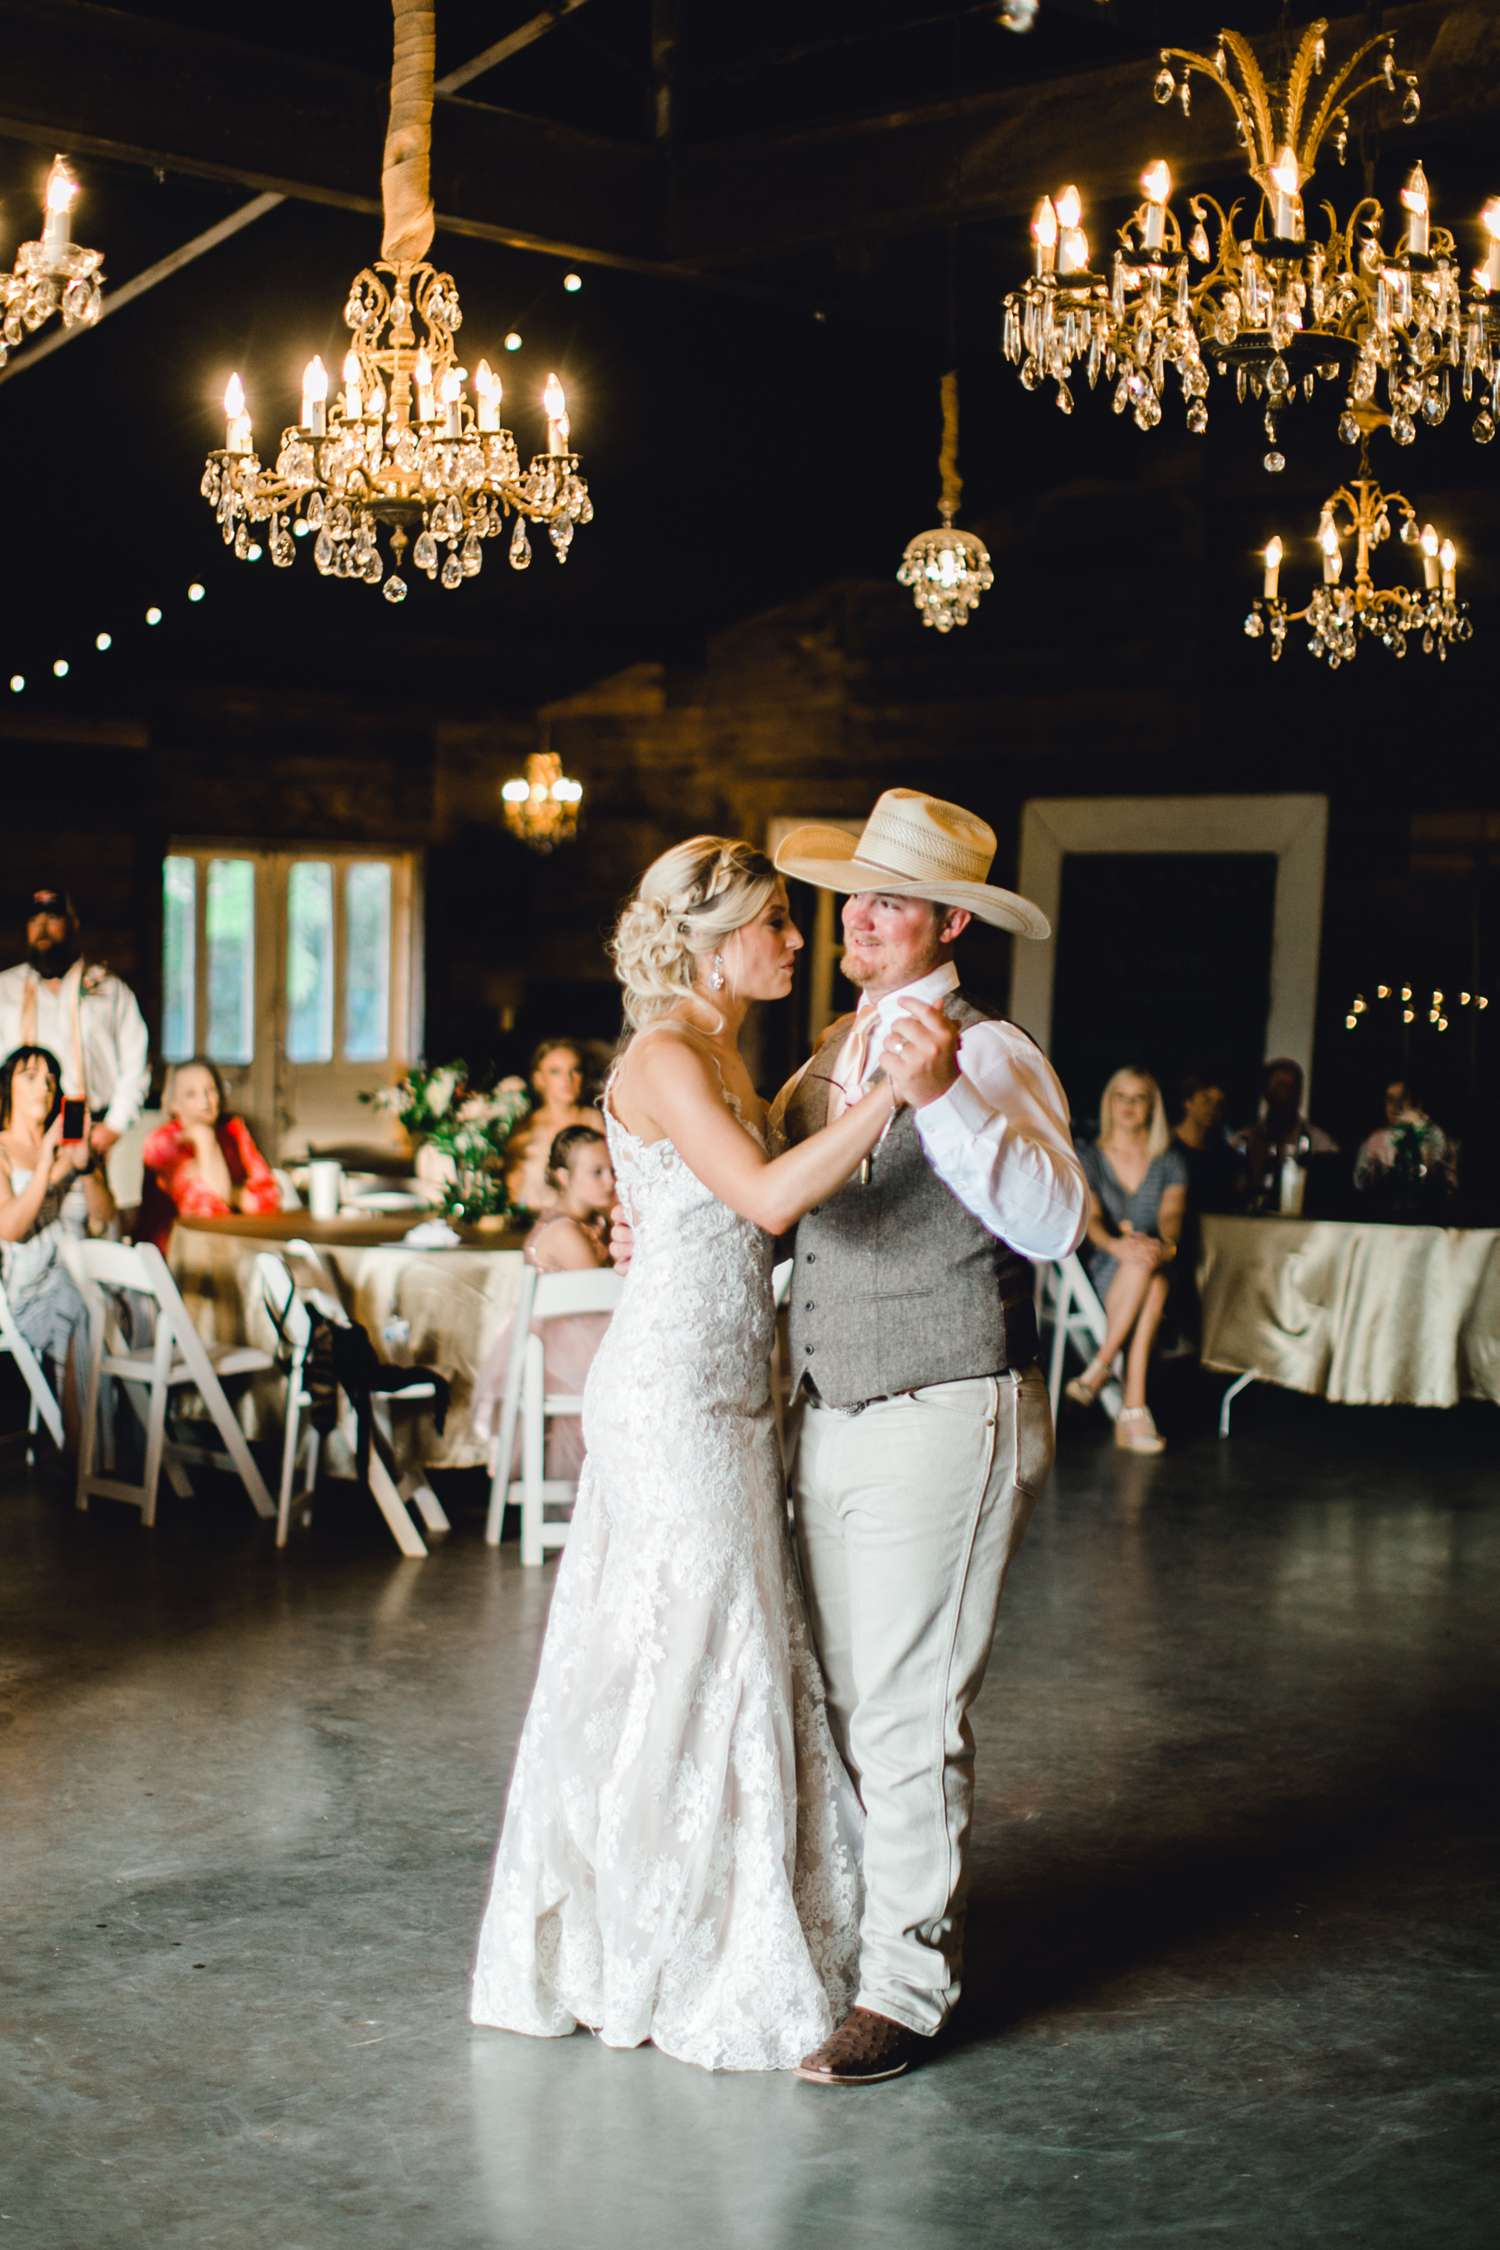 SARAH+TREVOR+BADGETT+SPARROW+CREEK+GRAHAM+TEXAS+ALLEEJ+WEDDINGS_0118.jpg